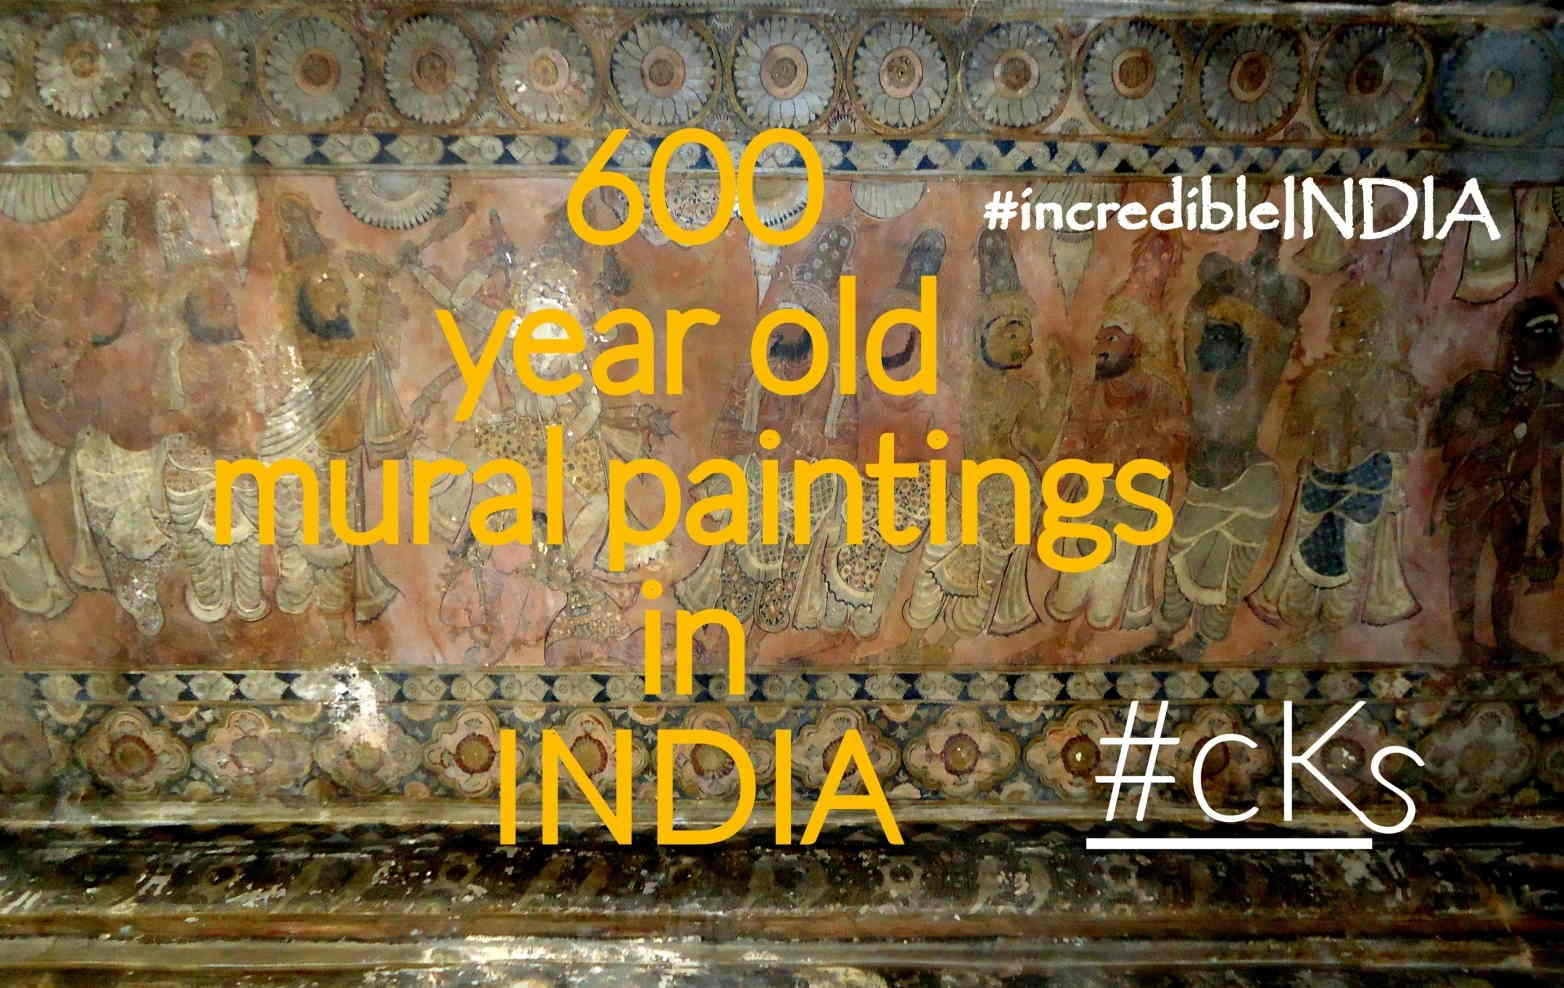 Centuries Old Ancient Mural Paintings in Indian Temple